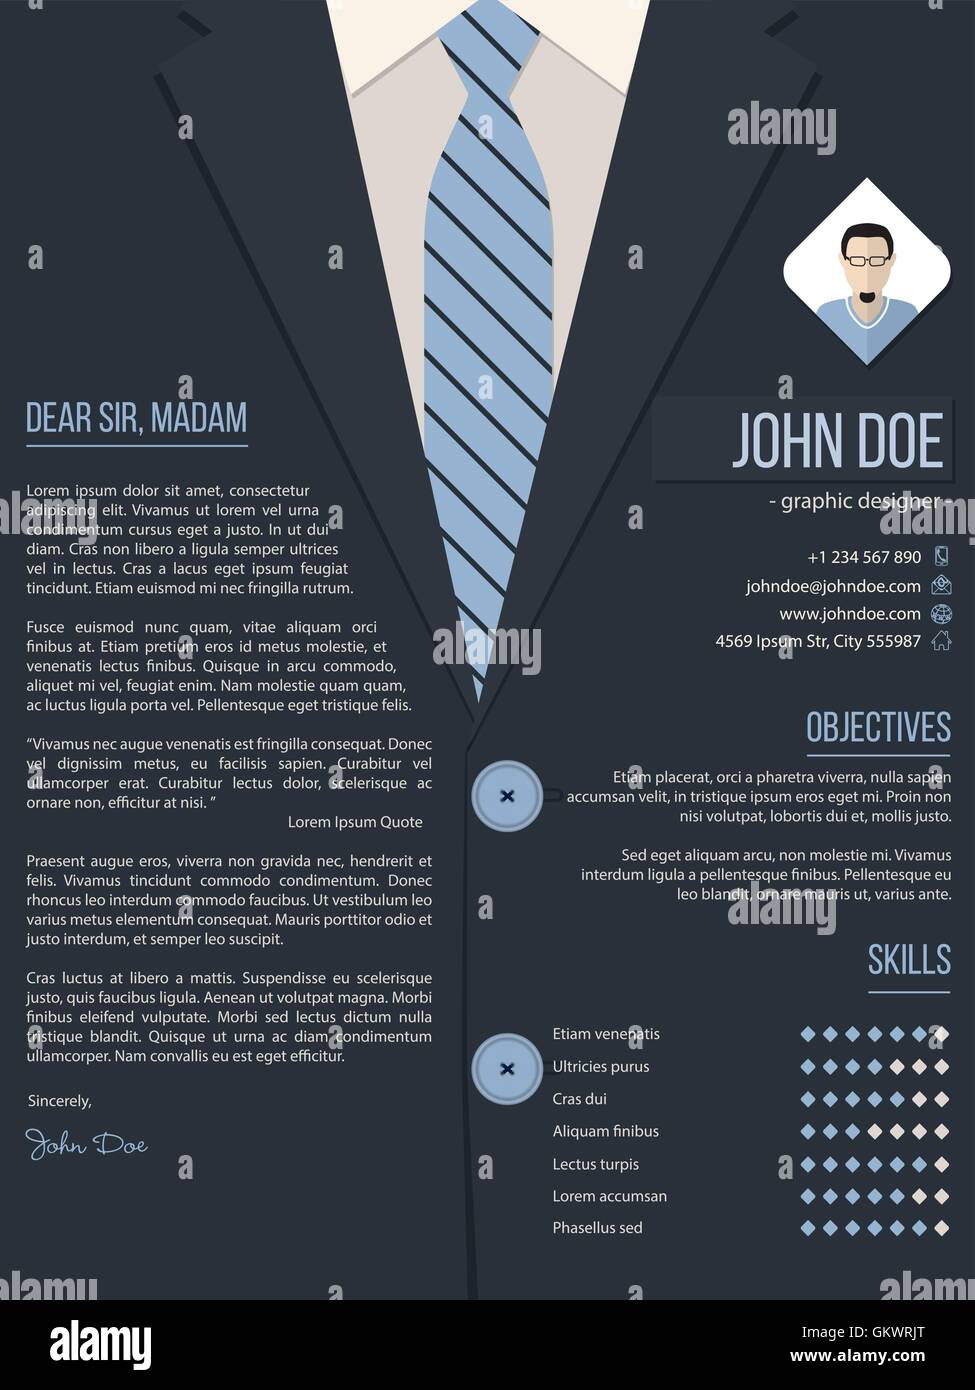 Cool Cover Letter Resume Template With Business Suit